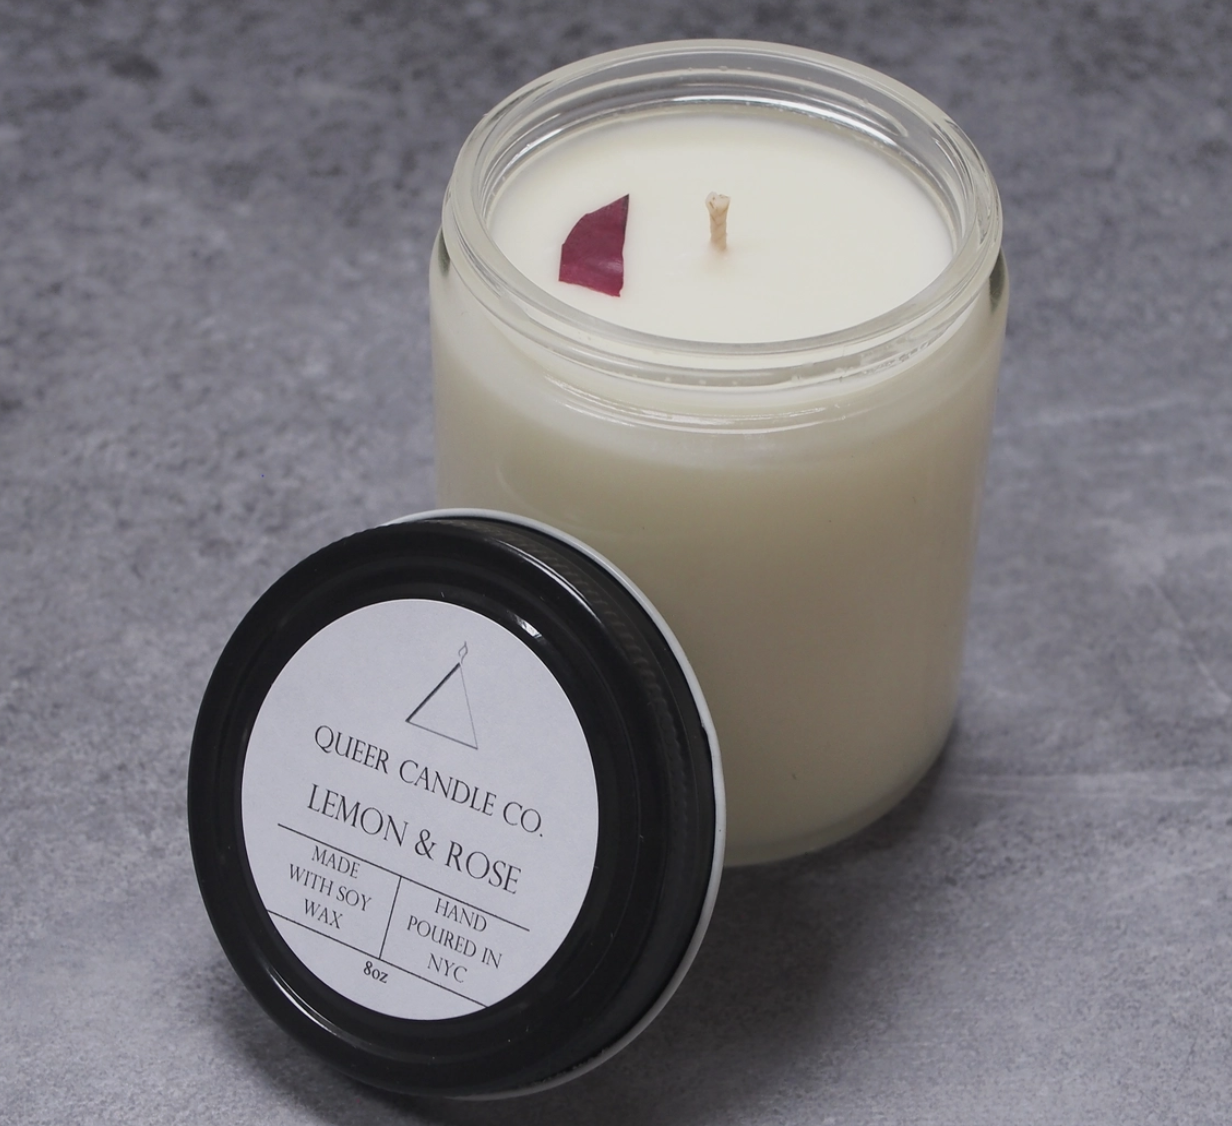 Queer Candle Co Lemon and Rose